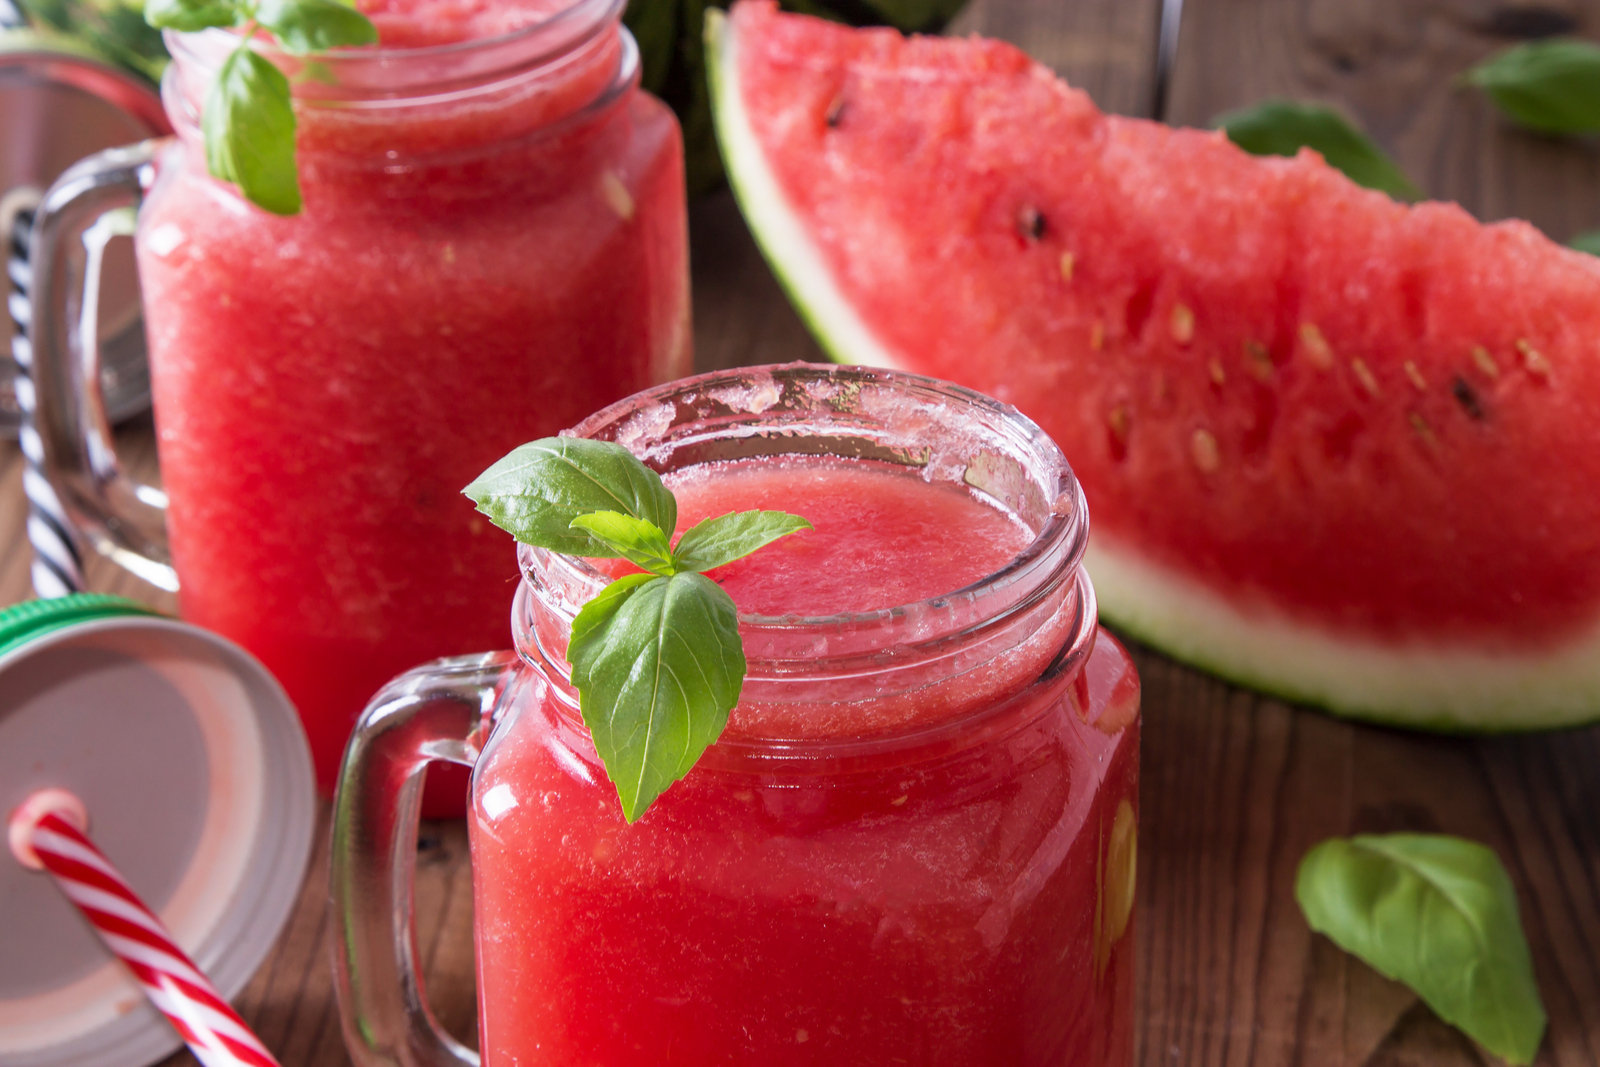 Watermelon Juice | 5 Easy and Tasty Juicing Recipes For Beginners